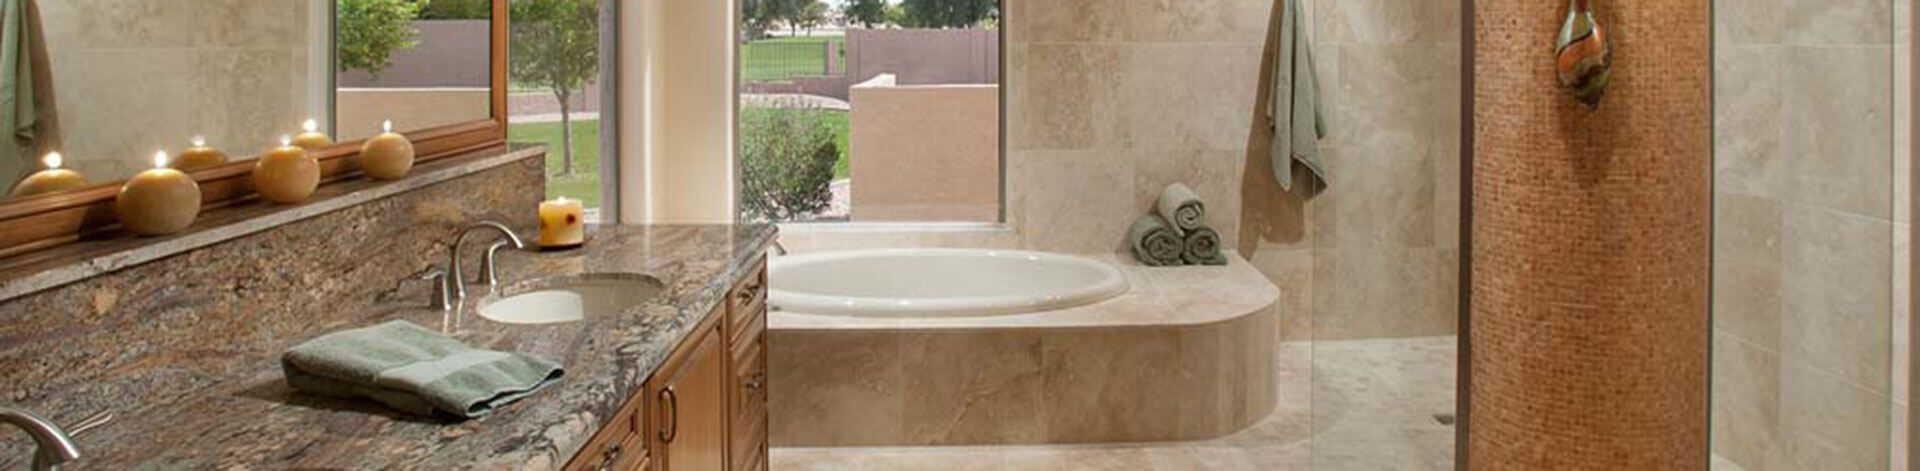 bathroom remodeling phoenix. Bathroom Remodeling in Phoenix   Scottsdale   Republic West Remodeling